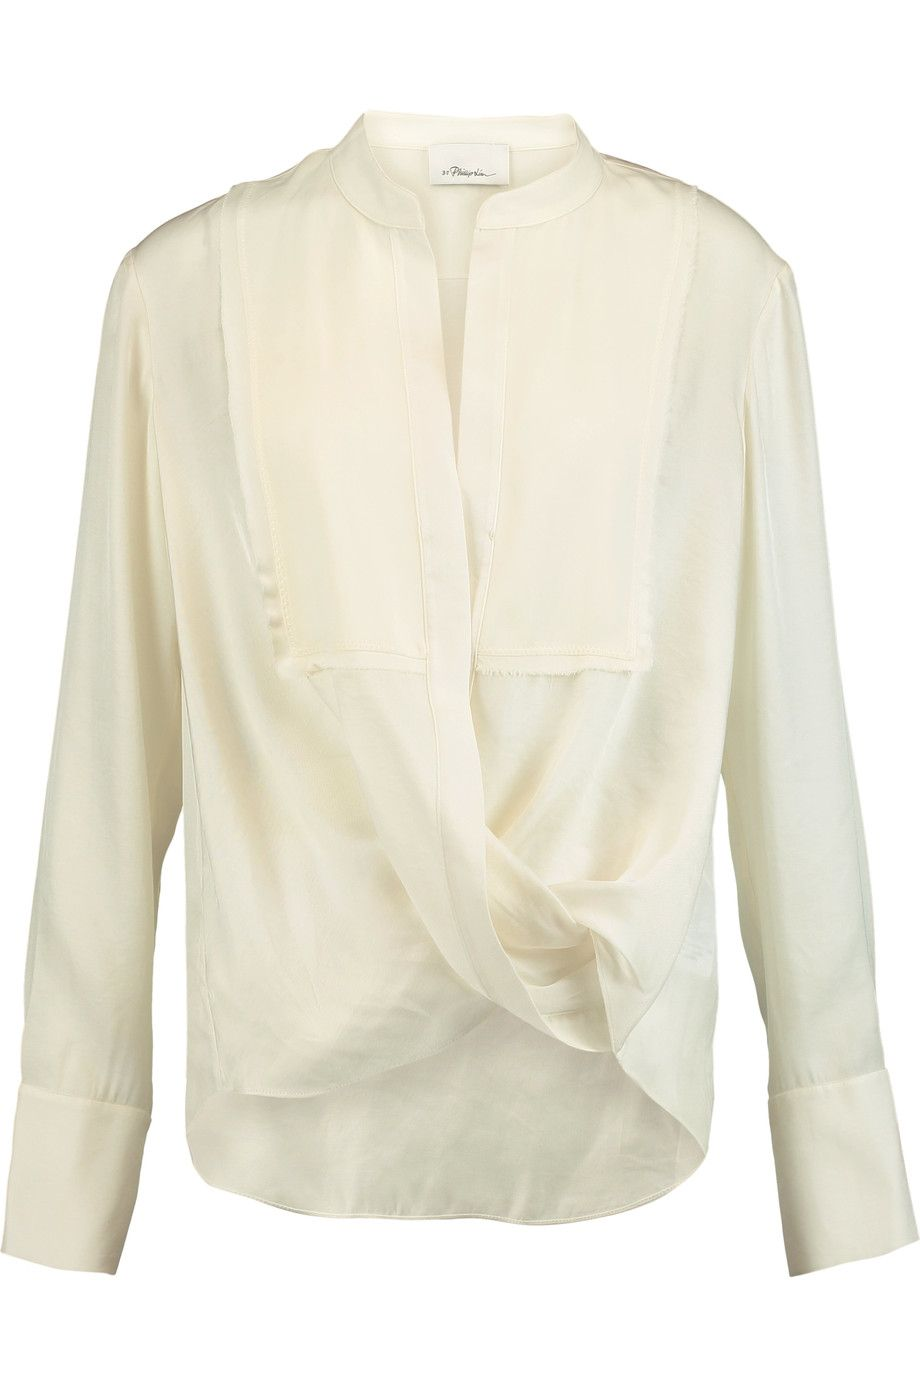 Outlet Countdown Package Cheap Sale How Much Wrap-effect silk-twill blouse 3.1 Phillip Lim Buy Cheap How Much DJYStnTl4